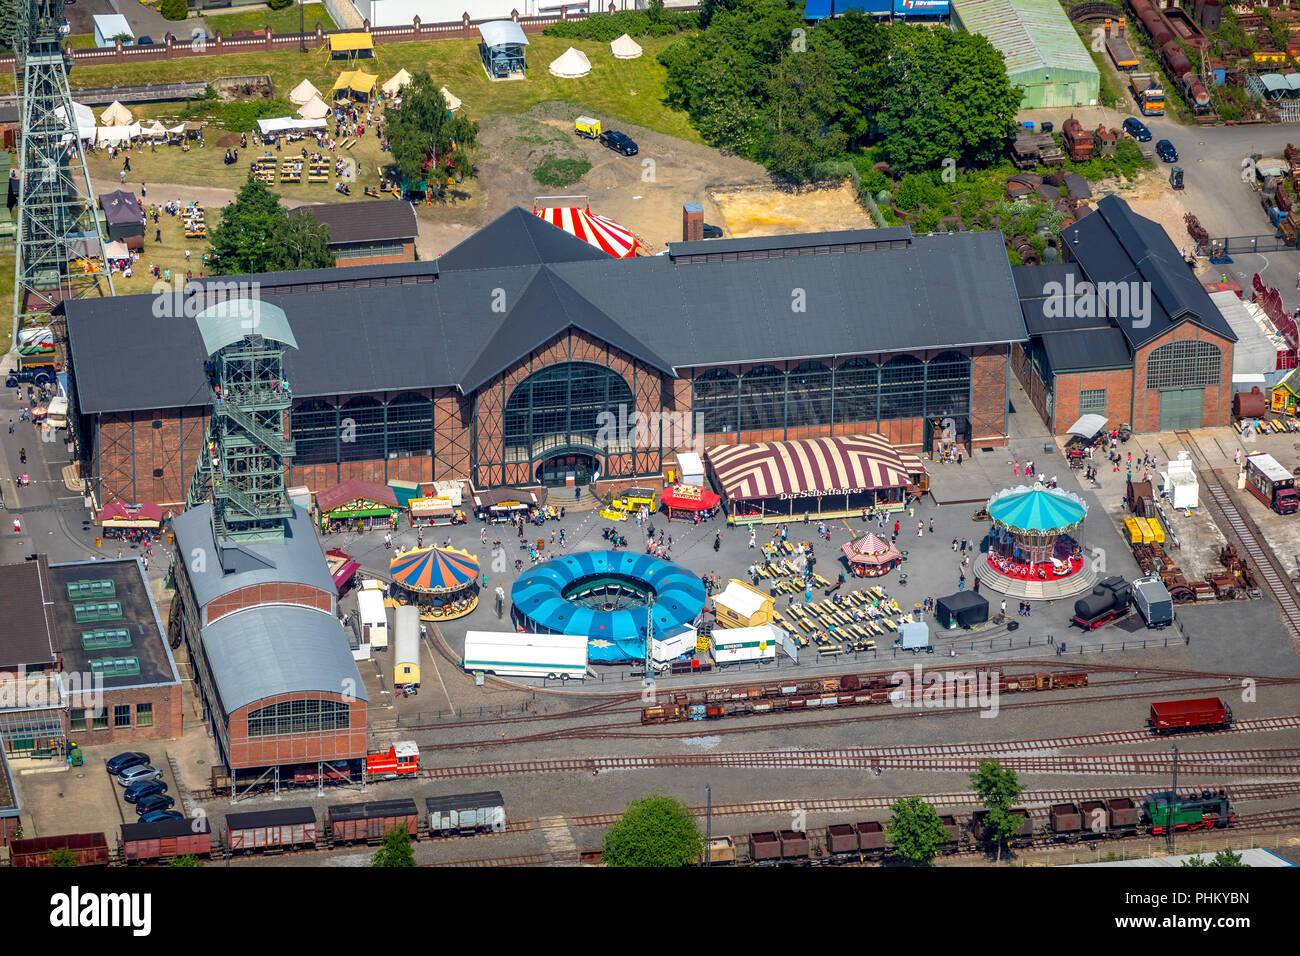 Aerial photo, Zollern colliery historical fair ,Festival on the grounds of Zollern colliery, LWL-Industriemuseum - Westfälisches Landesmuseum für Indu - Stock Image